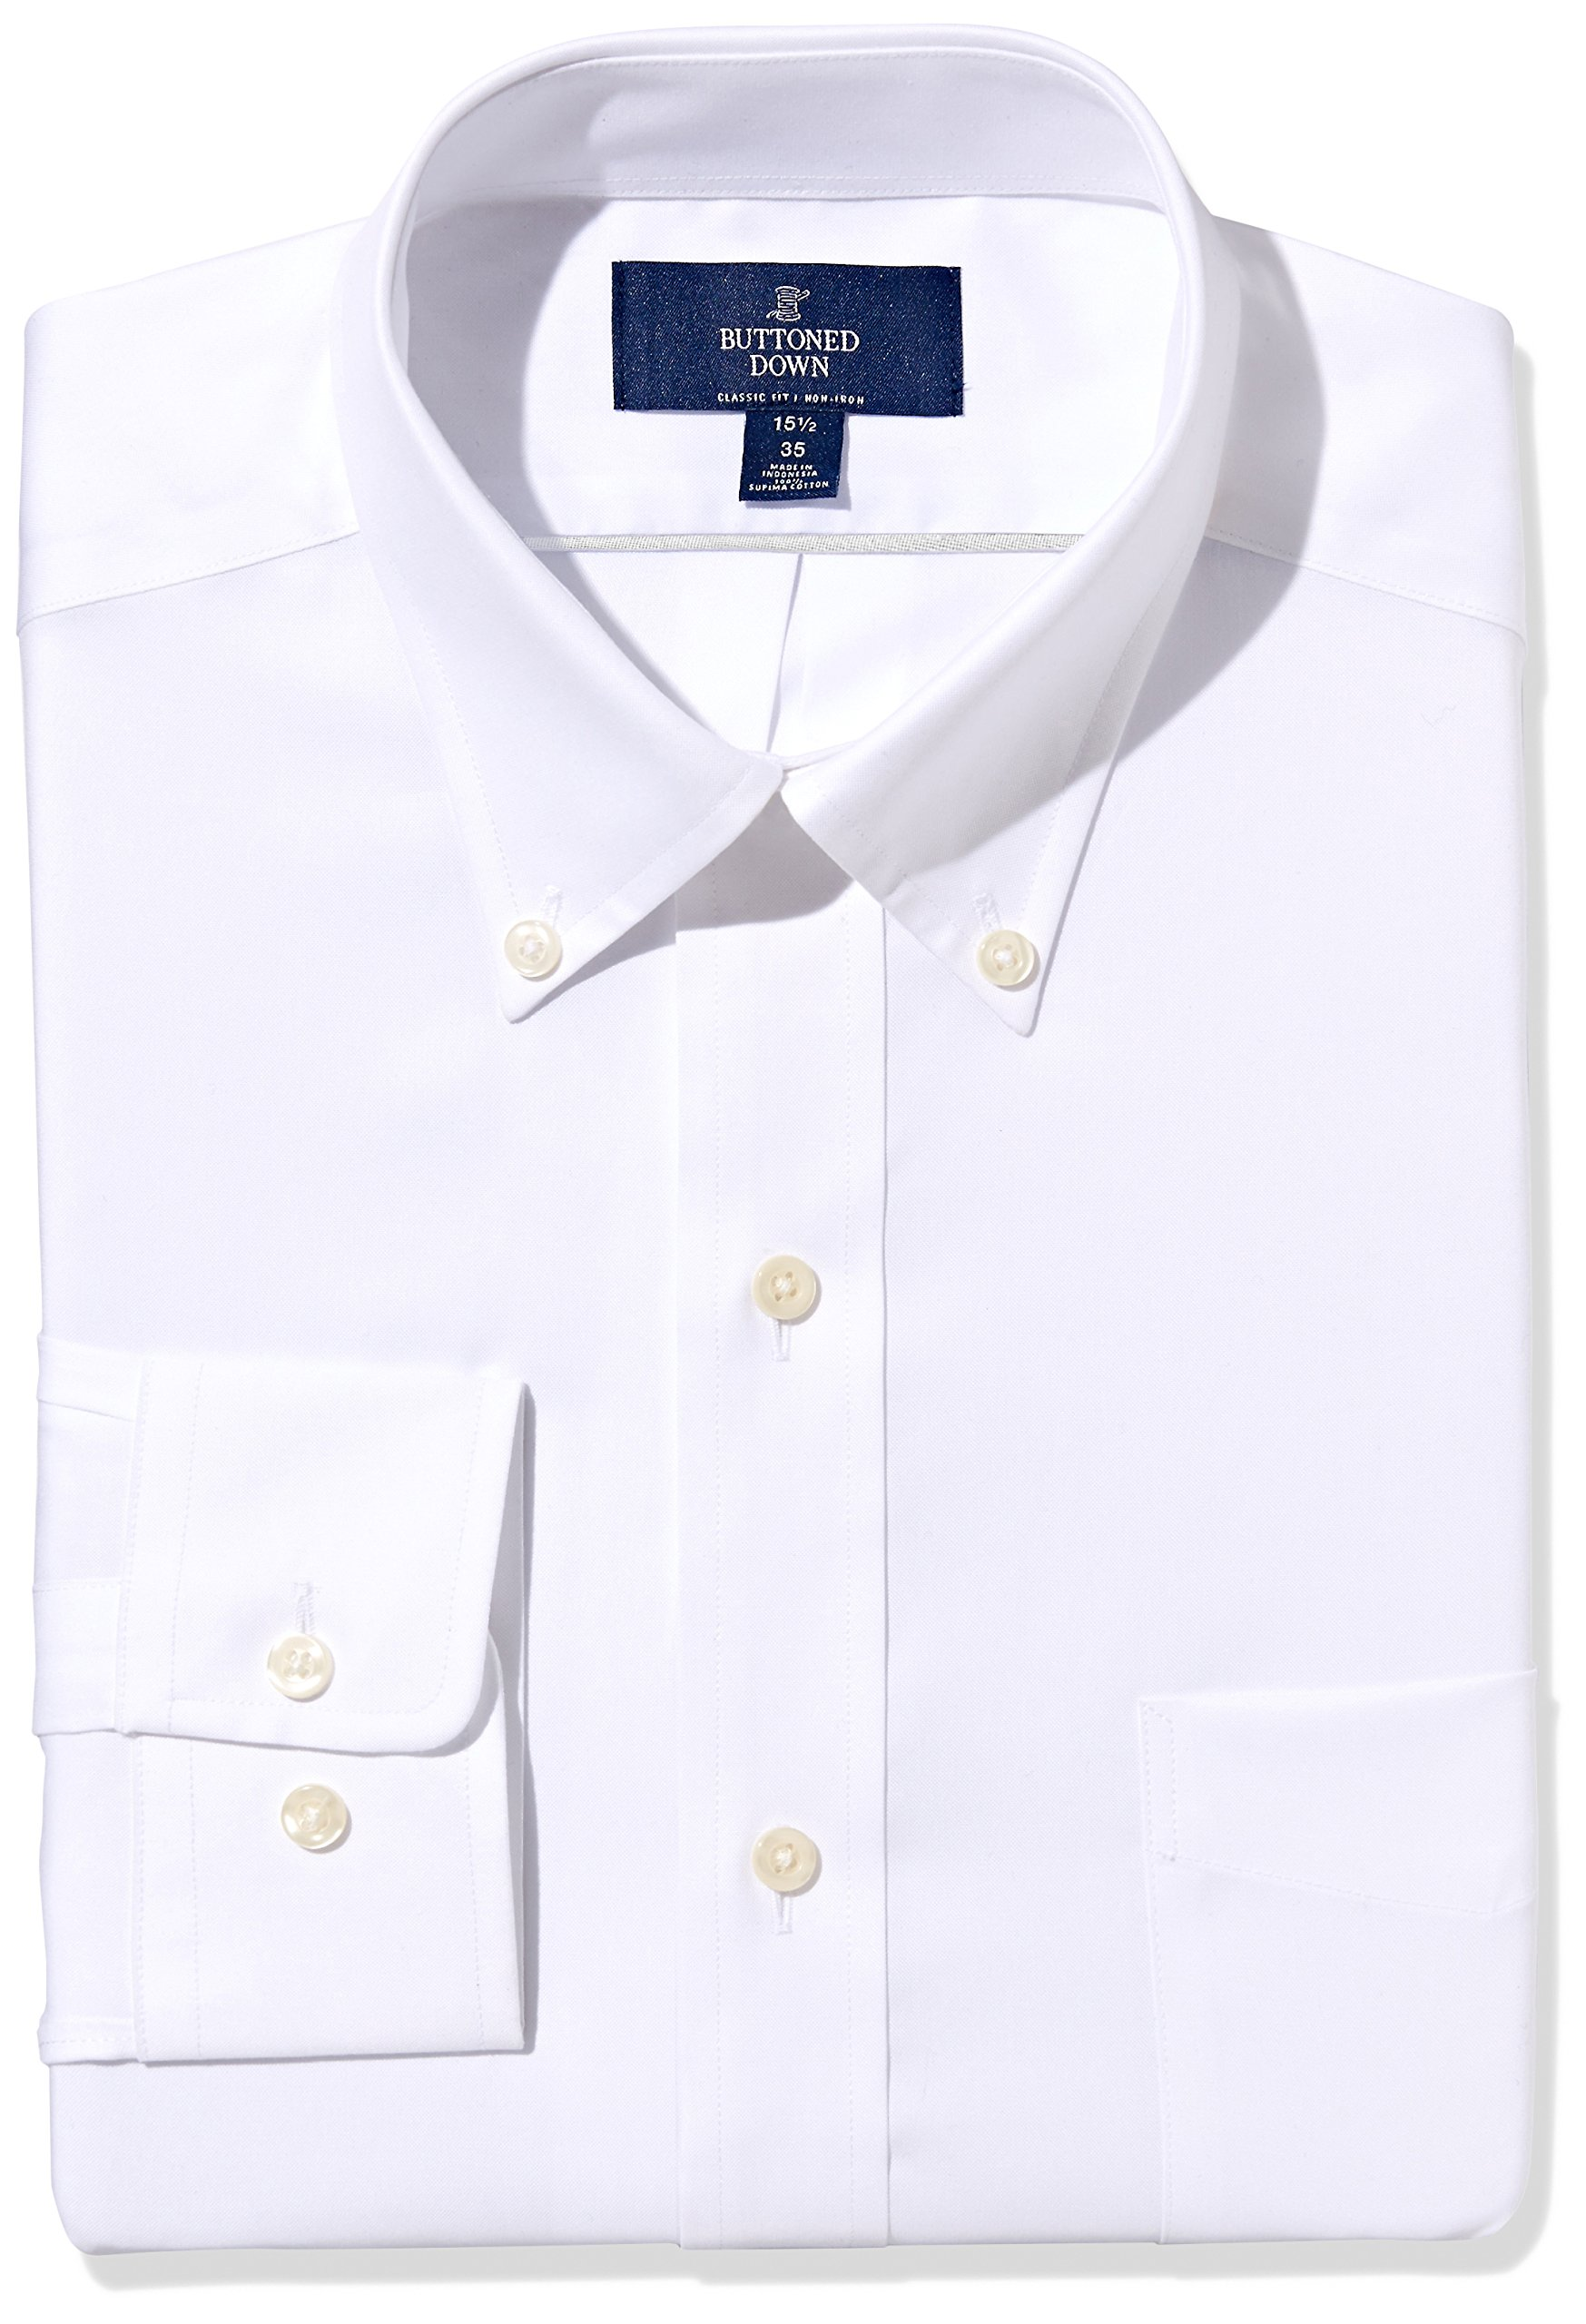 Buttoned Down Men's Classic Fit Button-Collar Non-Iron Dress Shirt (Pocket), White, 18.5'' Neck 35'' Sleeve (Big and Tall)